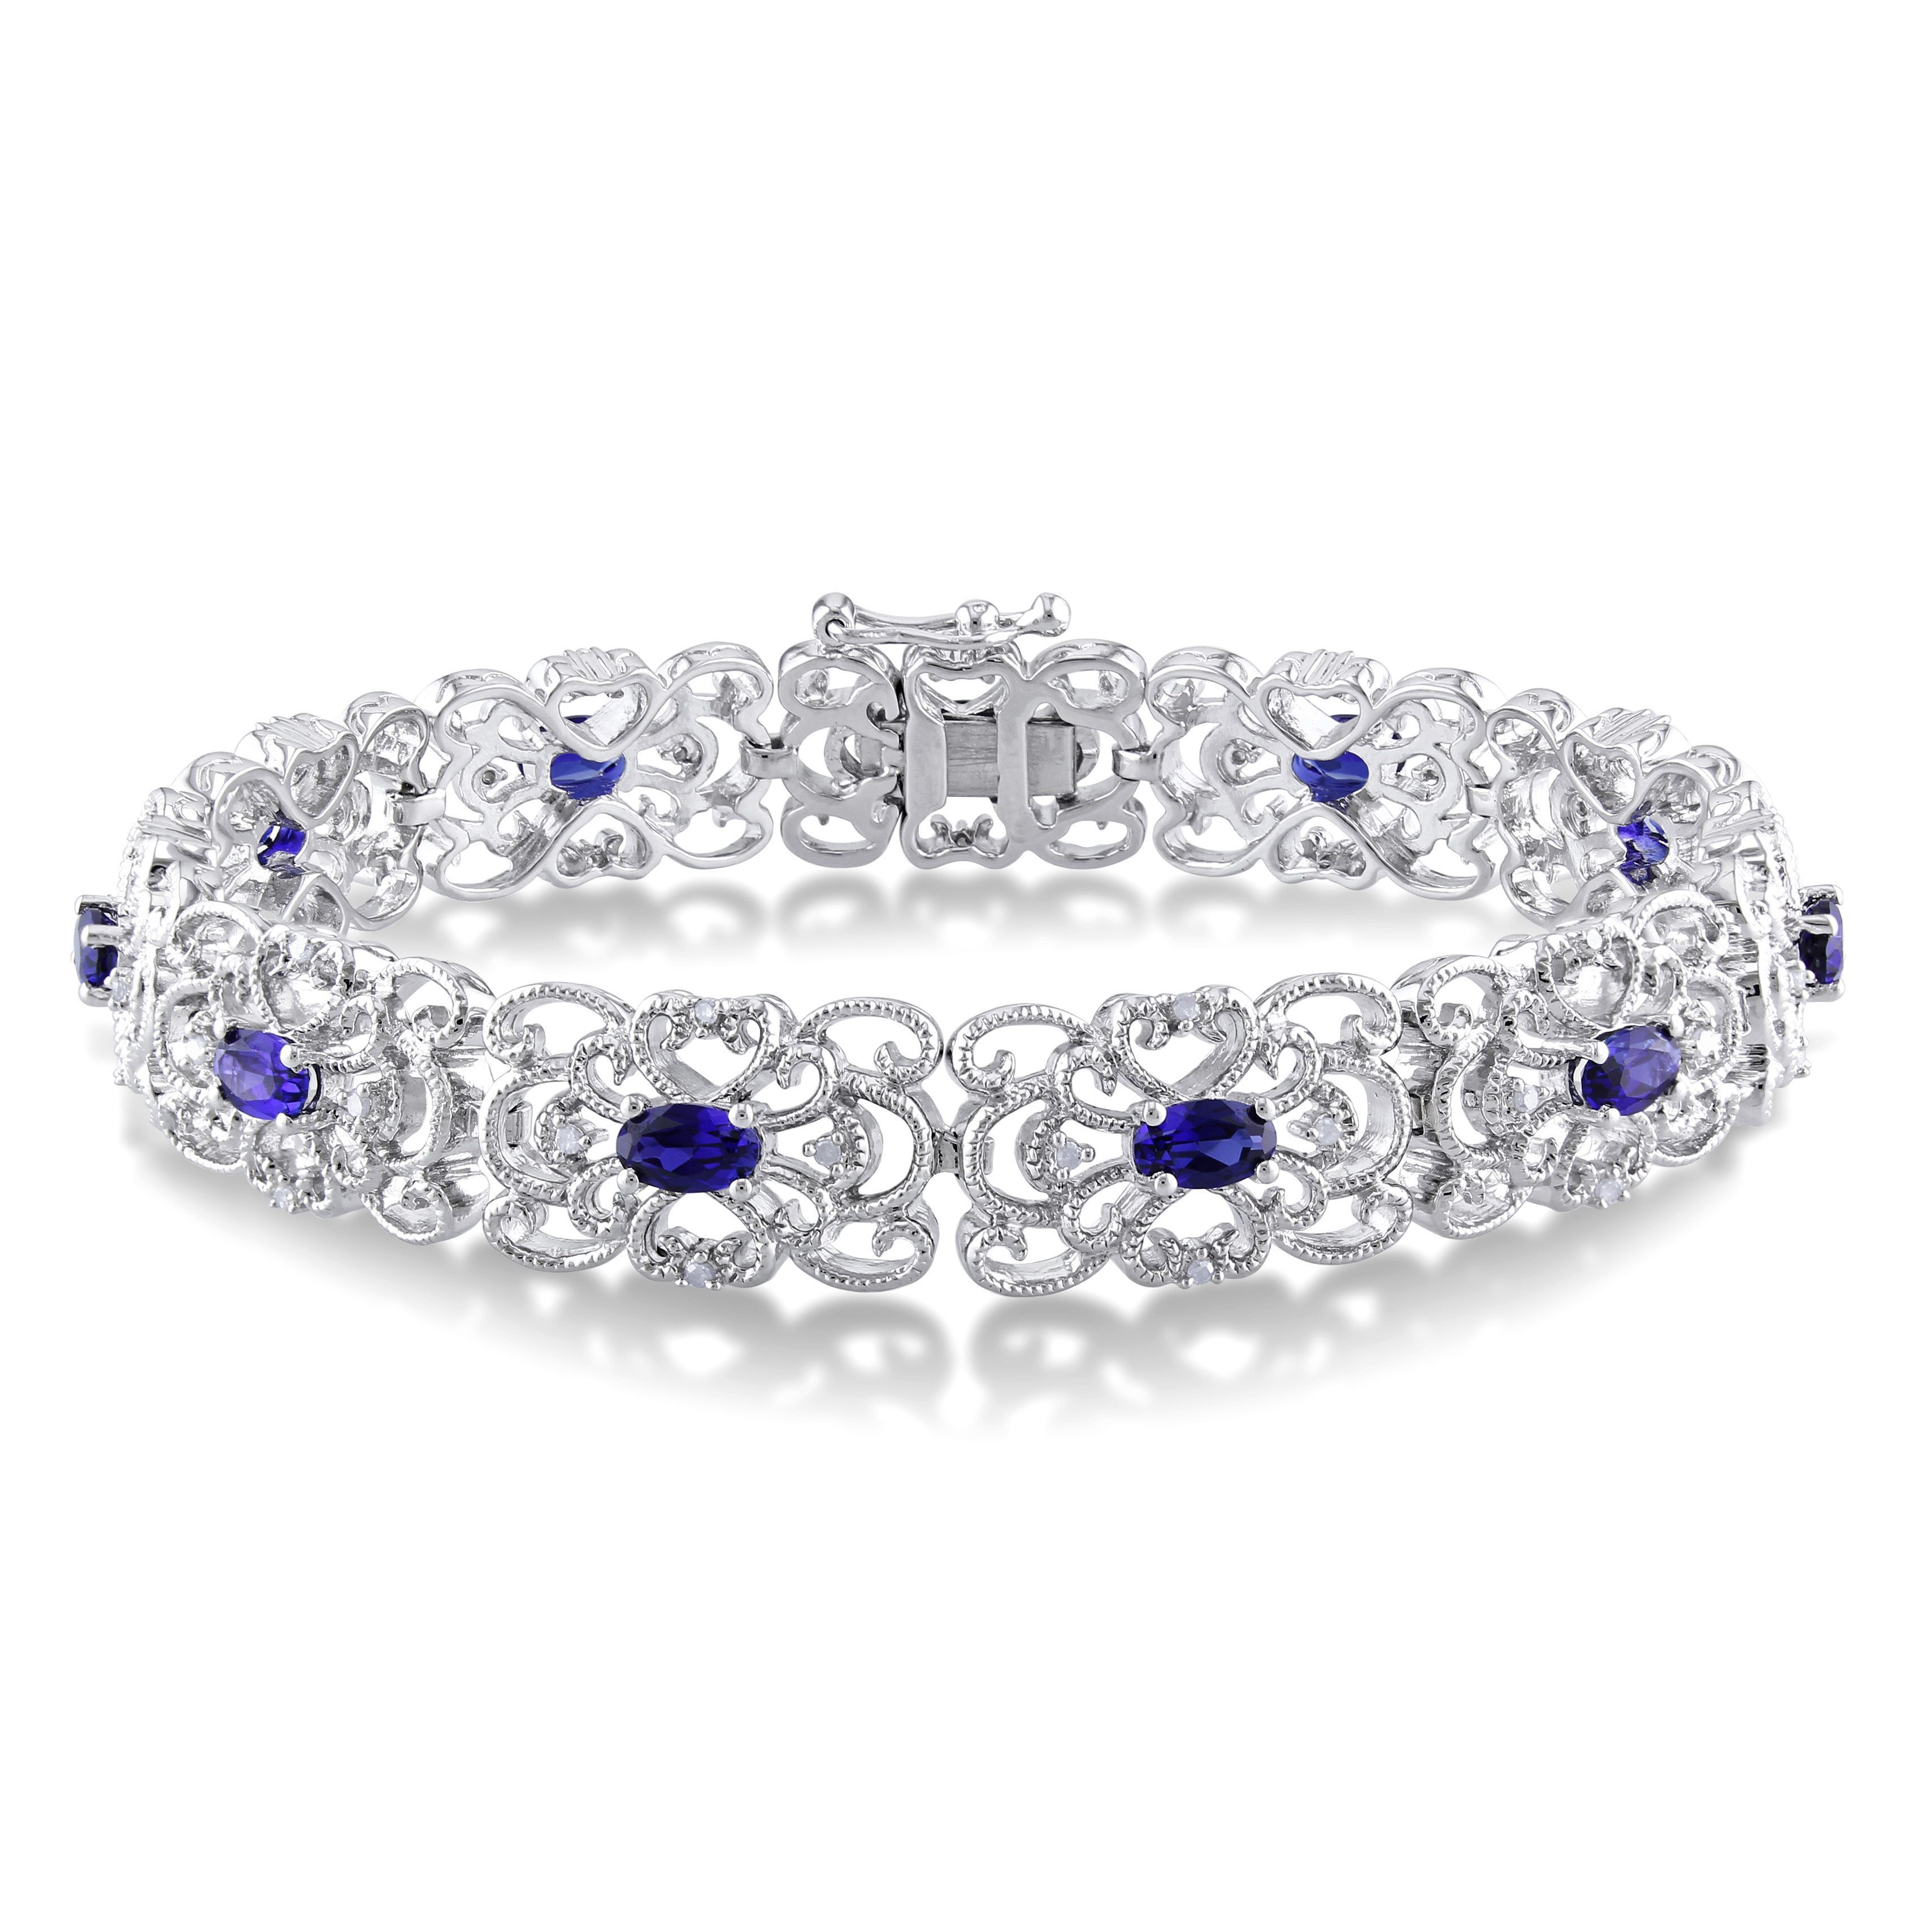 This shimmering bracelet from the Miadora Collection features 11 oval-cut created blue sapphires and 43 round white diamonds set in sterling silver. This lovely piece is secured with a box-with-tongue clasp.